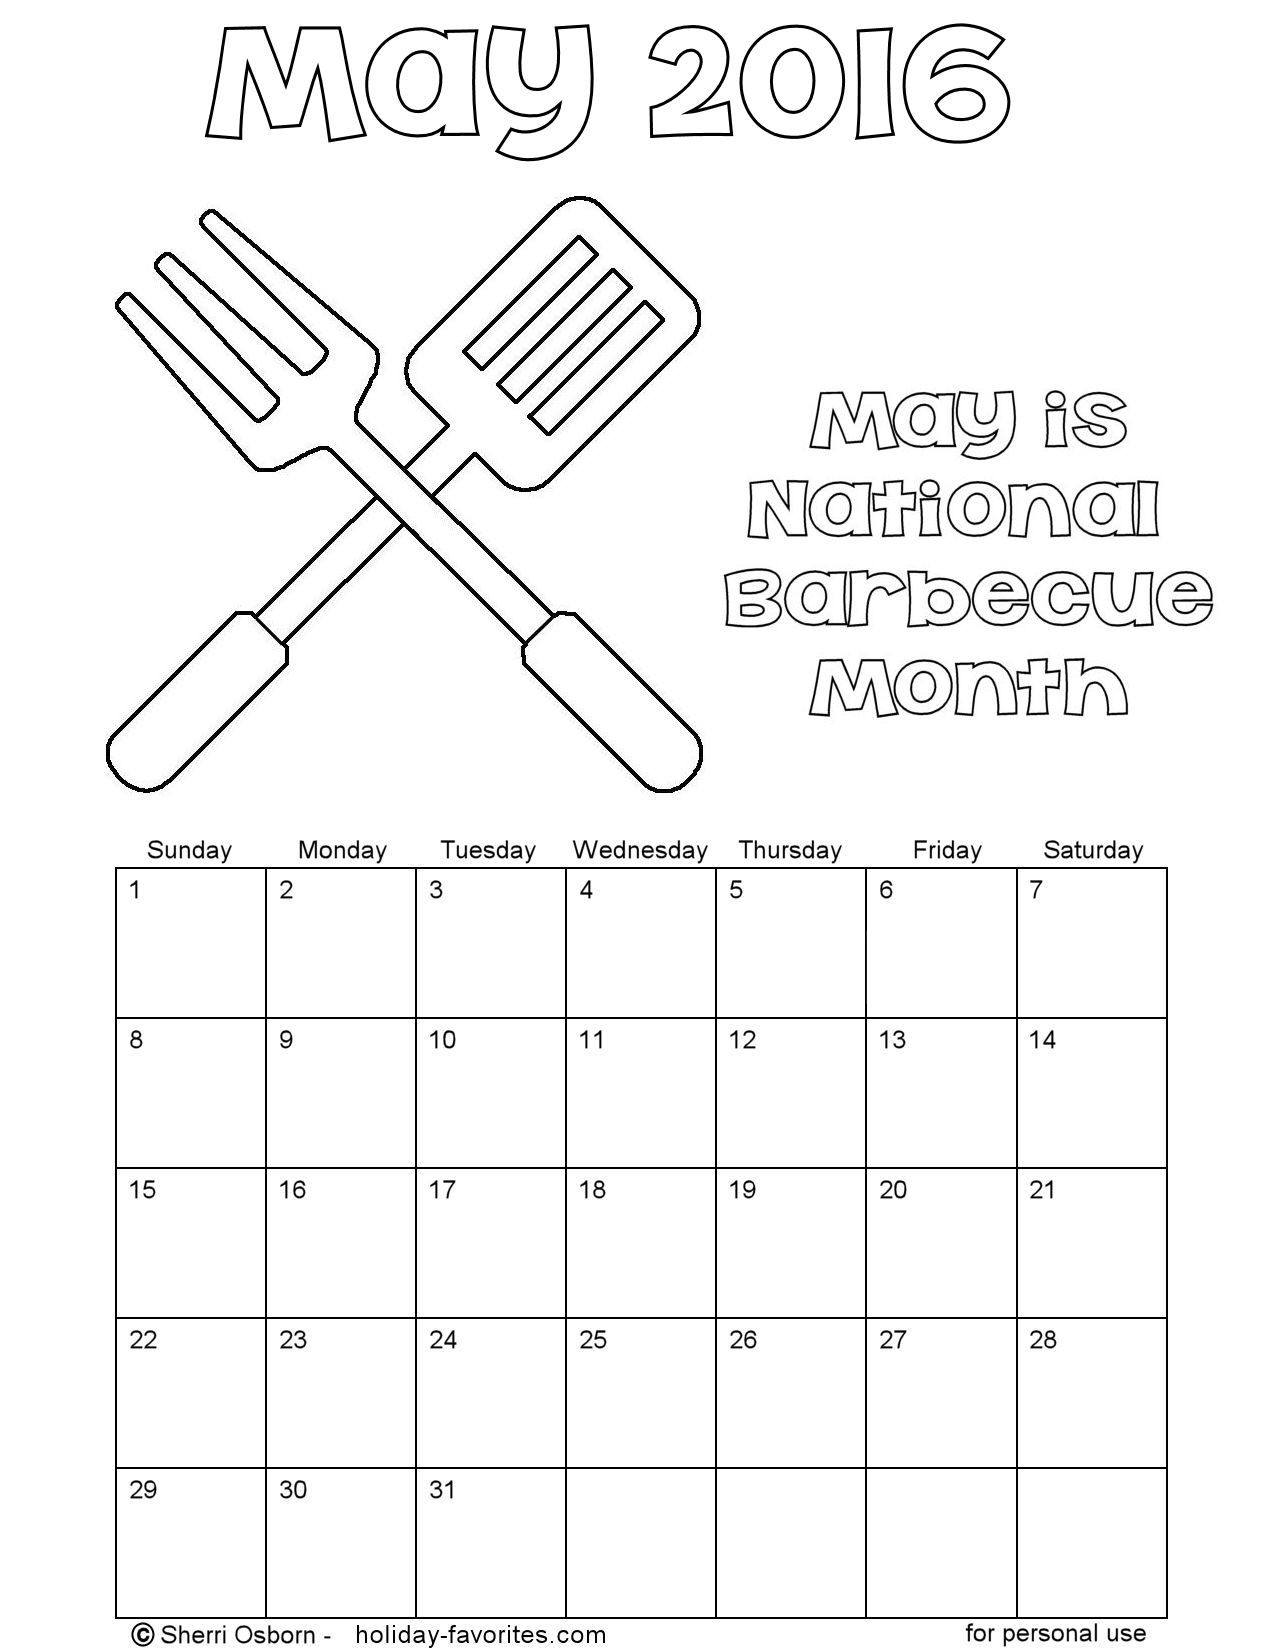 Printable may 2016 calendars holiday favorites for Calendar coloring page